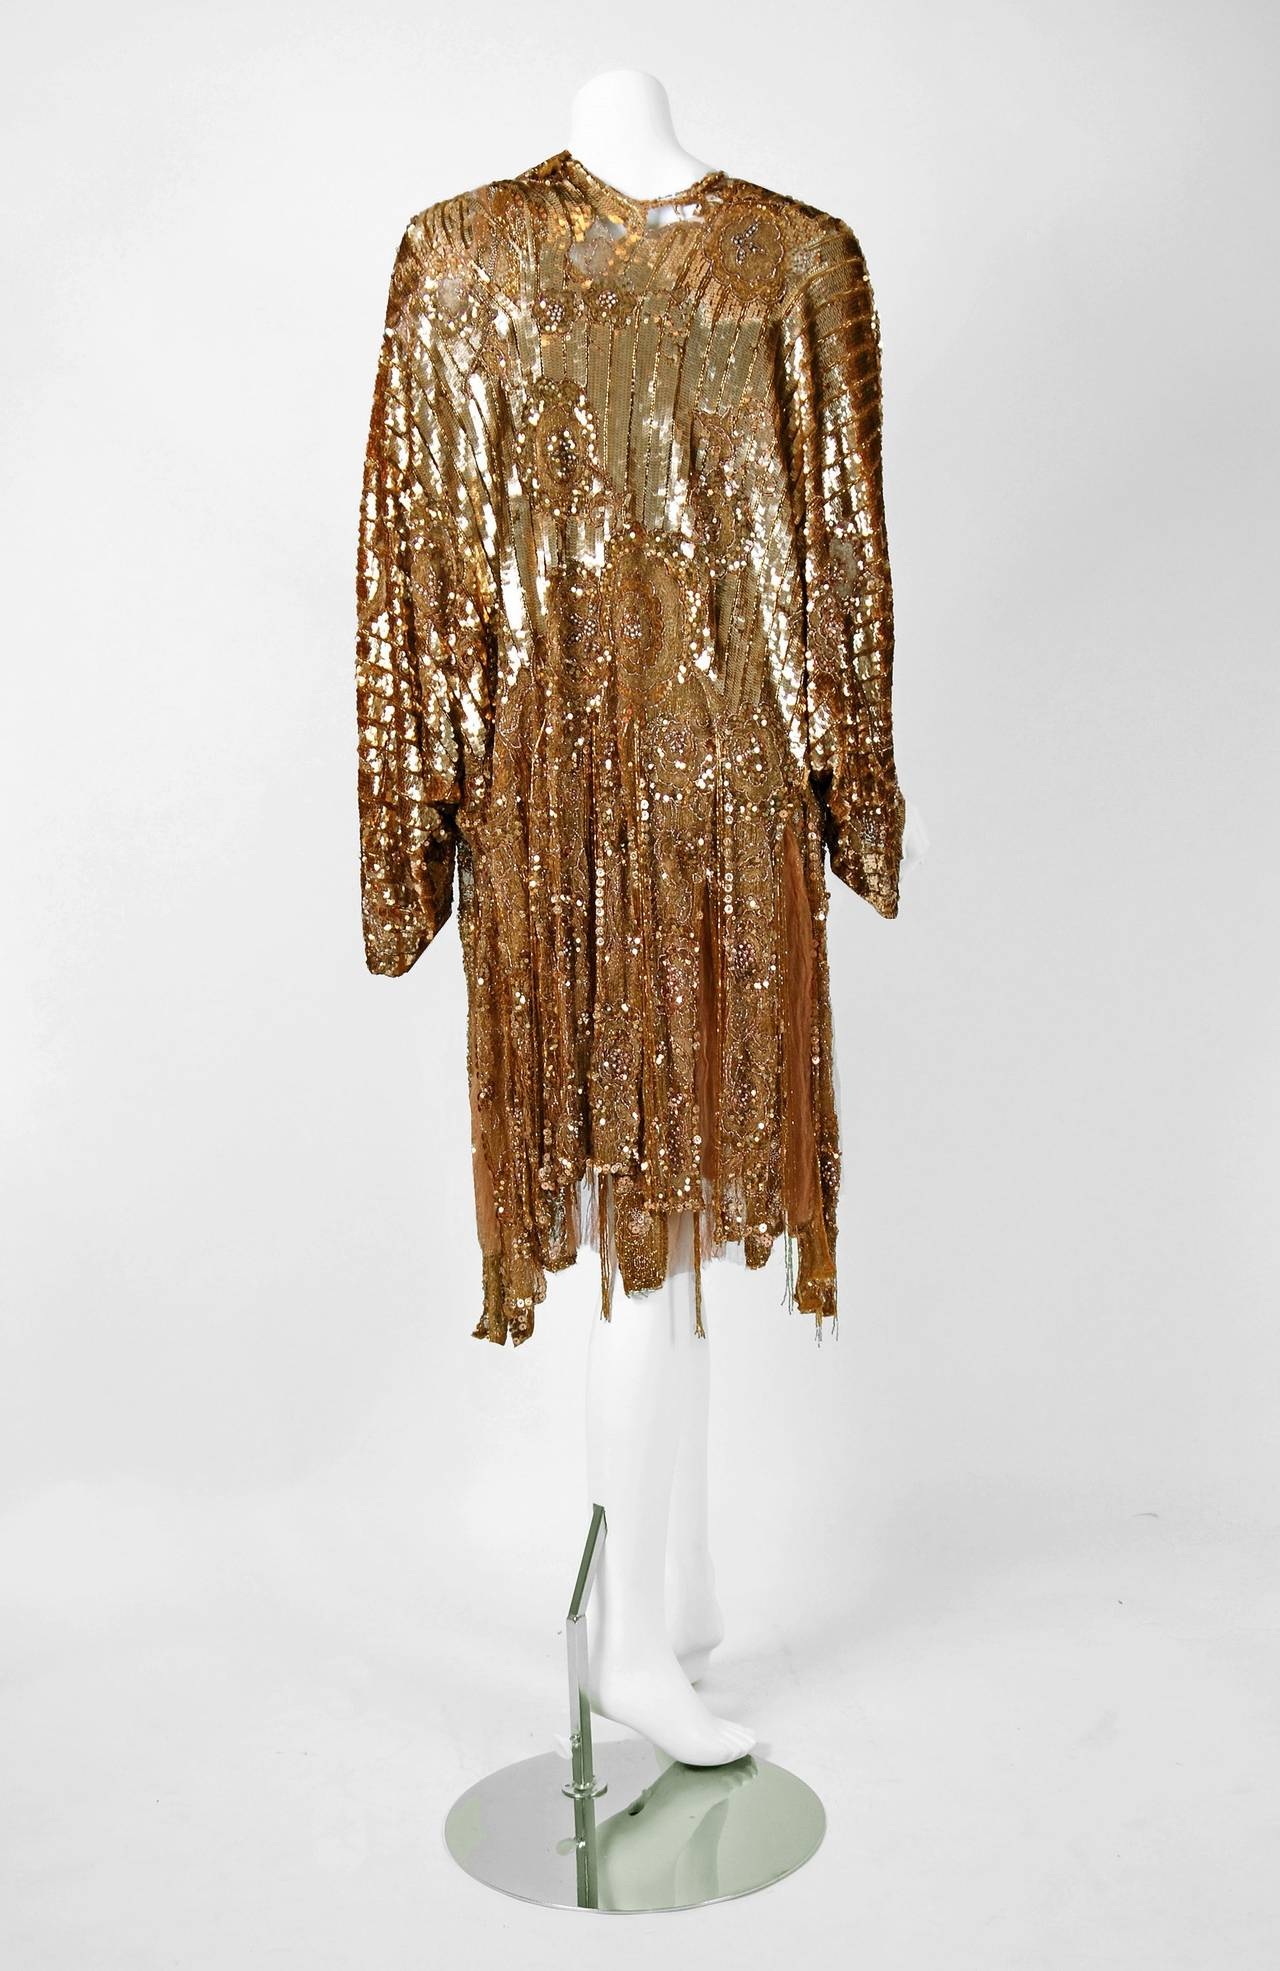 1920's French Metallic-Gold Beaded Sequin Deco Silk-Chiffon Flapper Dress & Coat For Sale 1